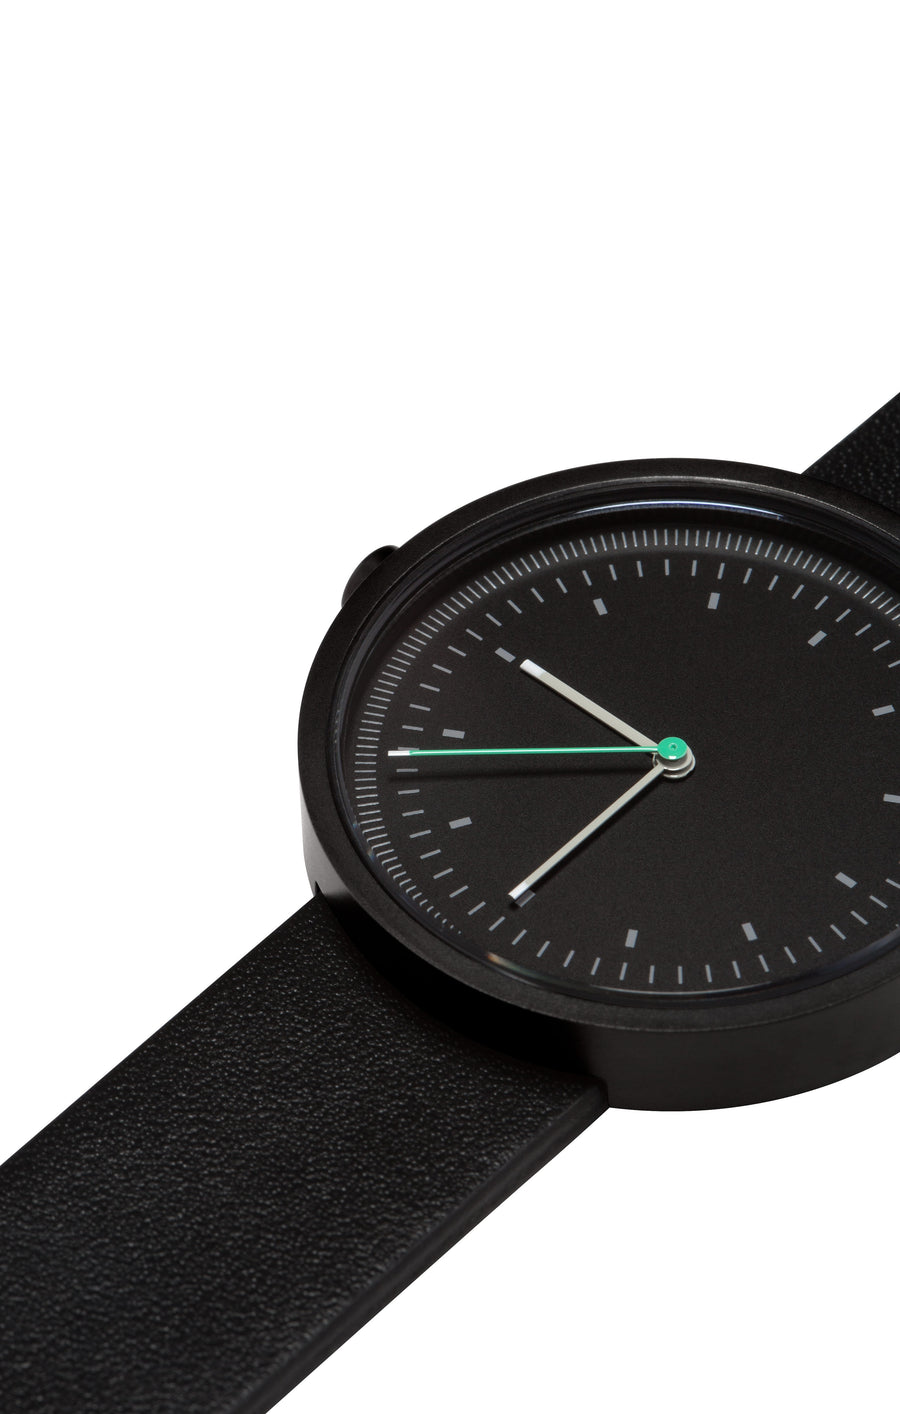 AÃRK Collective Interval Black Steel Leather 36mm Close-up View